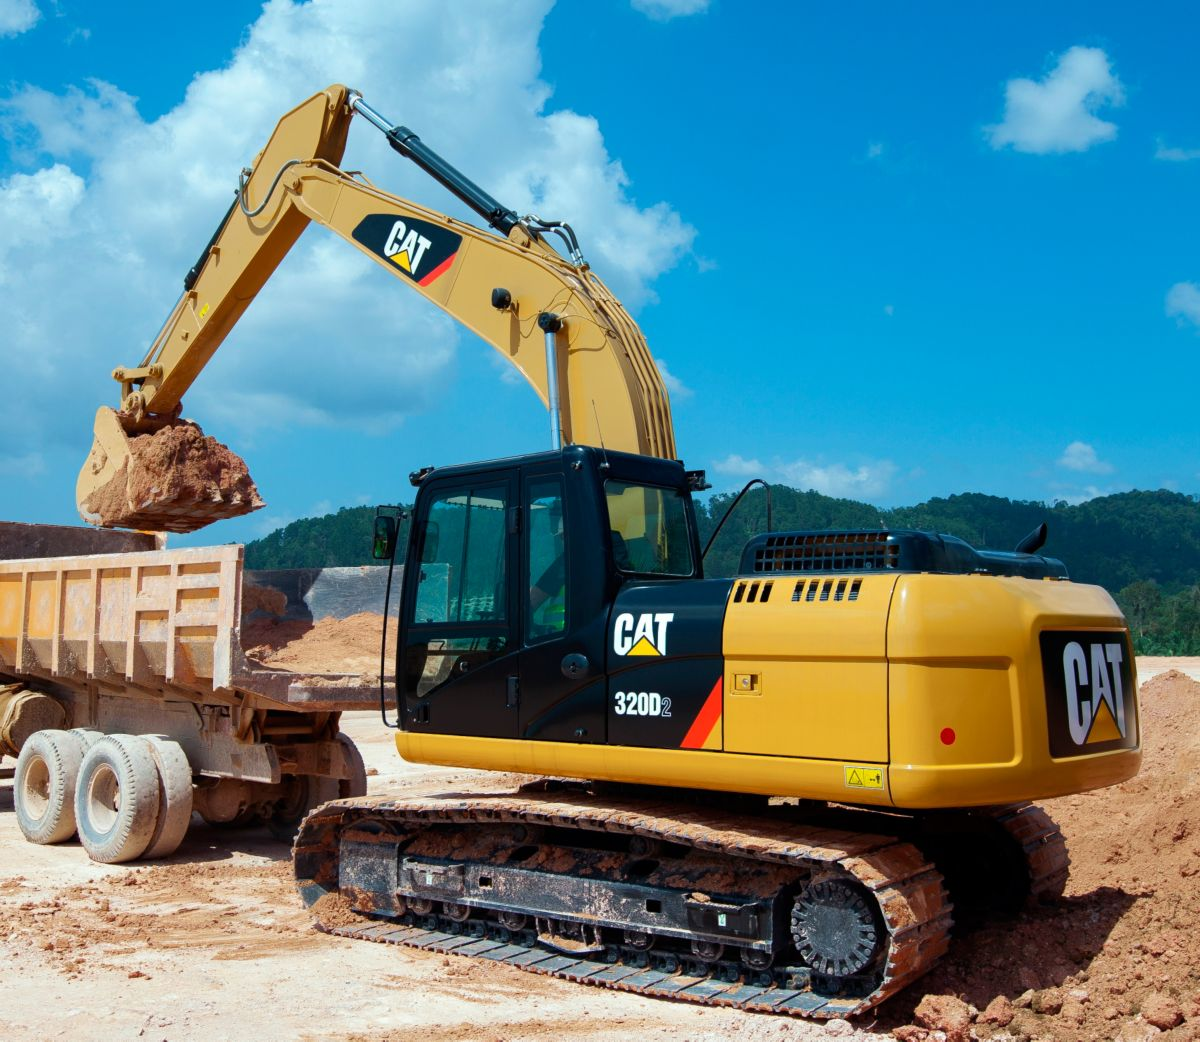 Cat 320D/D L SERIES 2 Medium Hydraulics Excavators for Sale and Rent